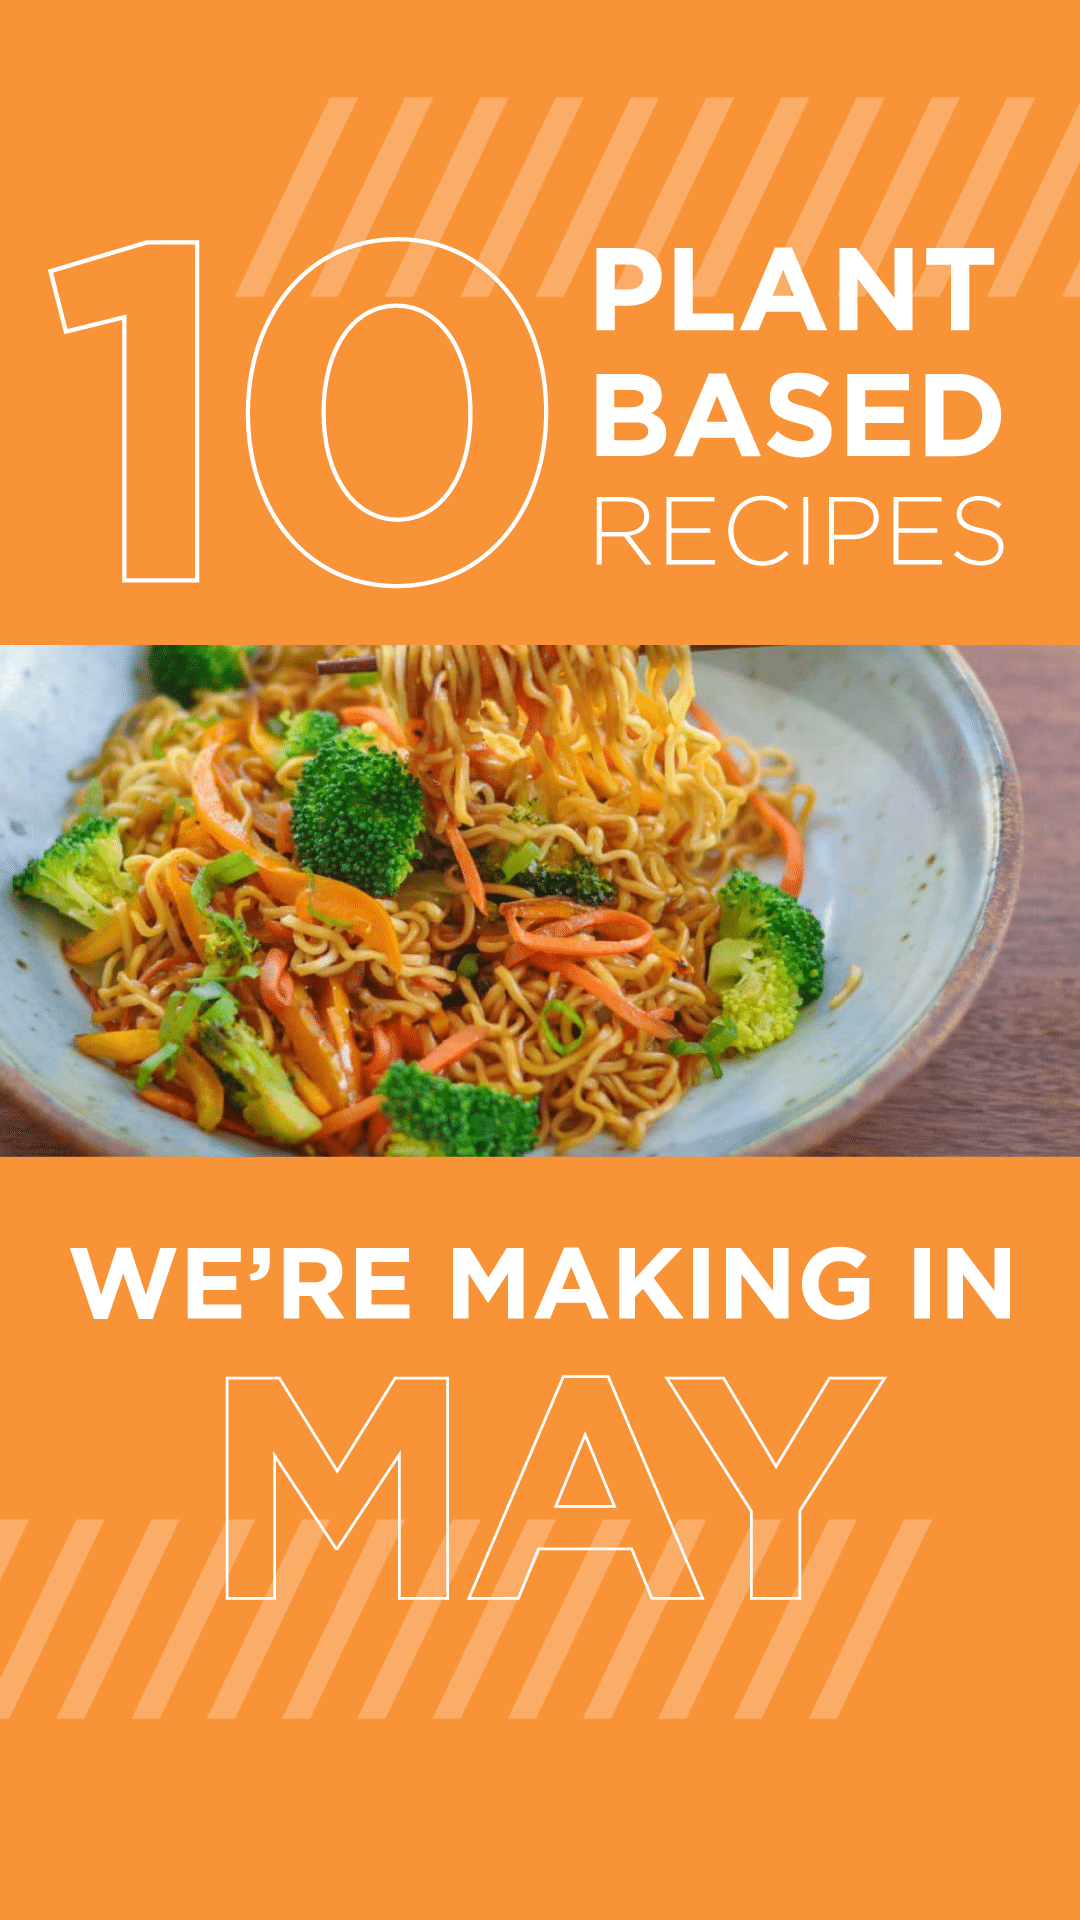 10 Plant-Based Recipes We're Making in May